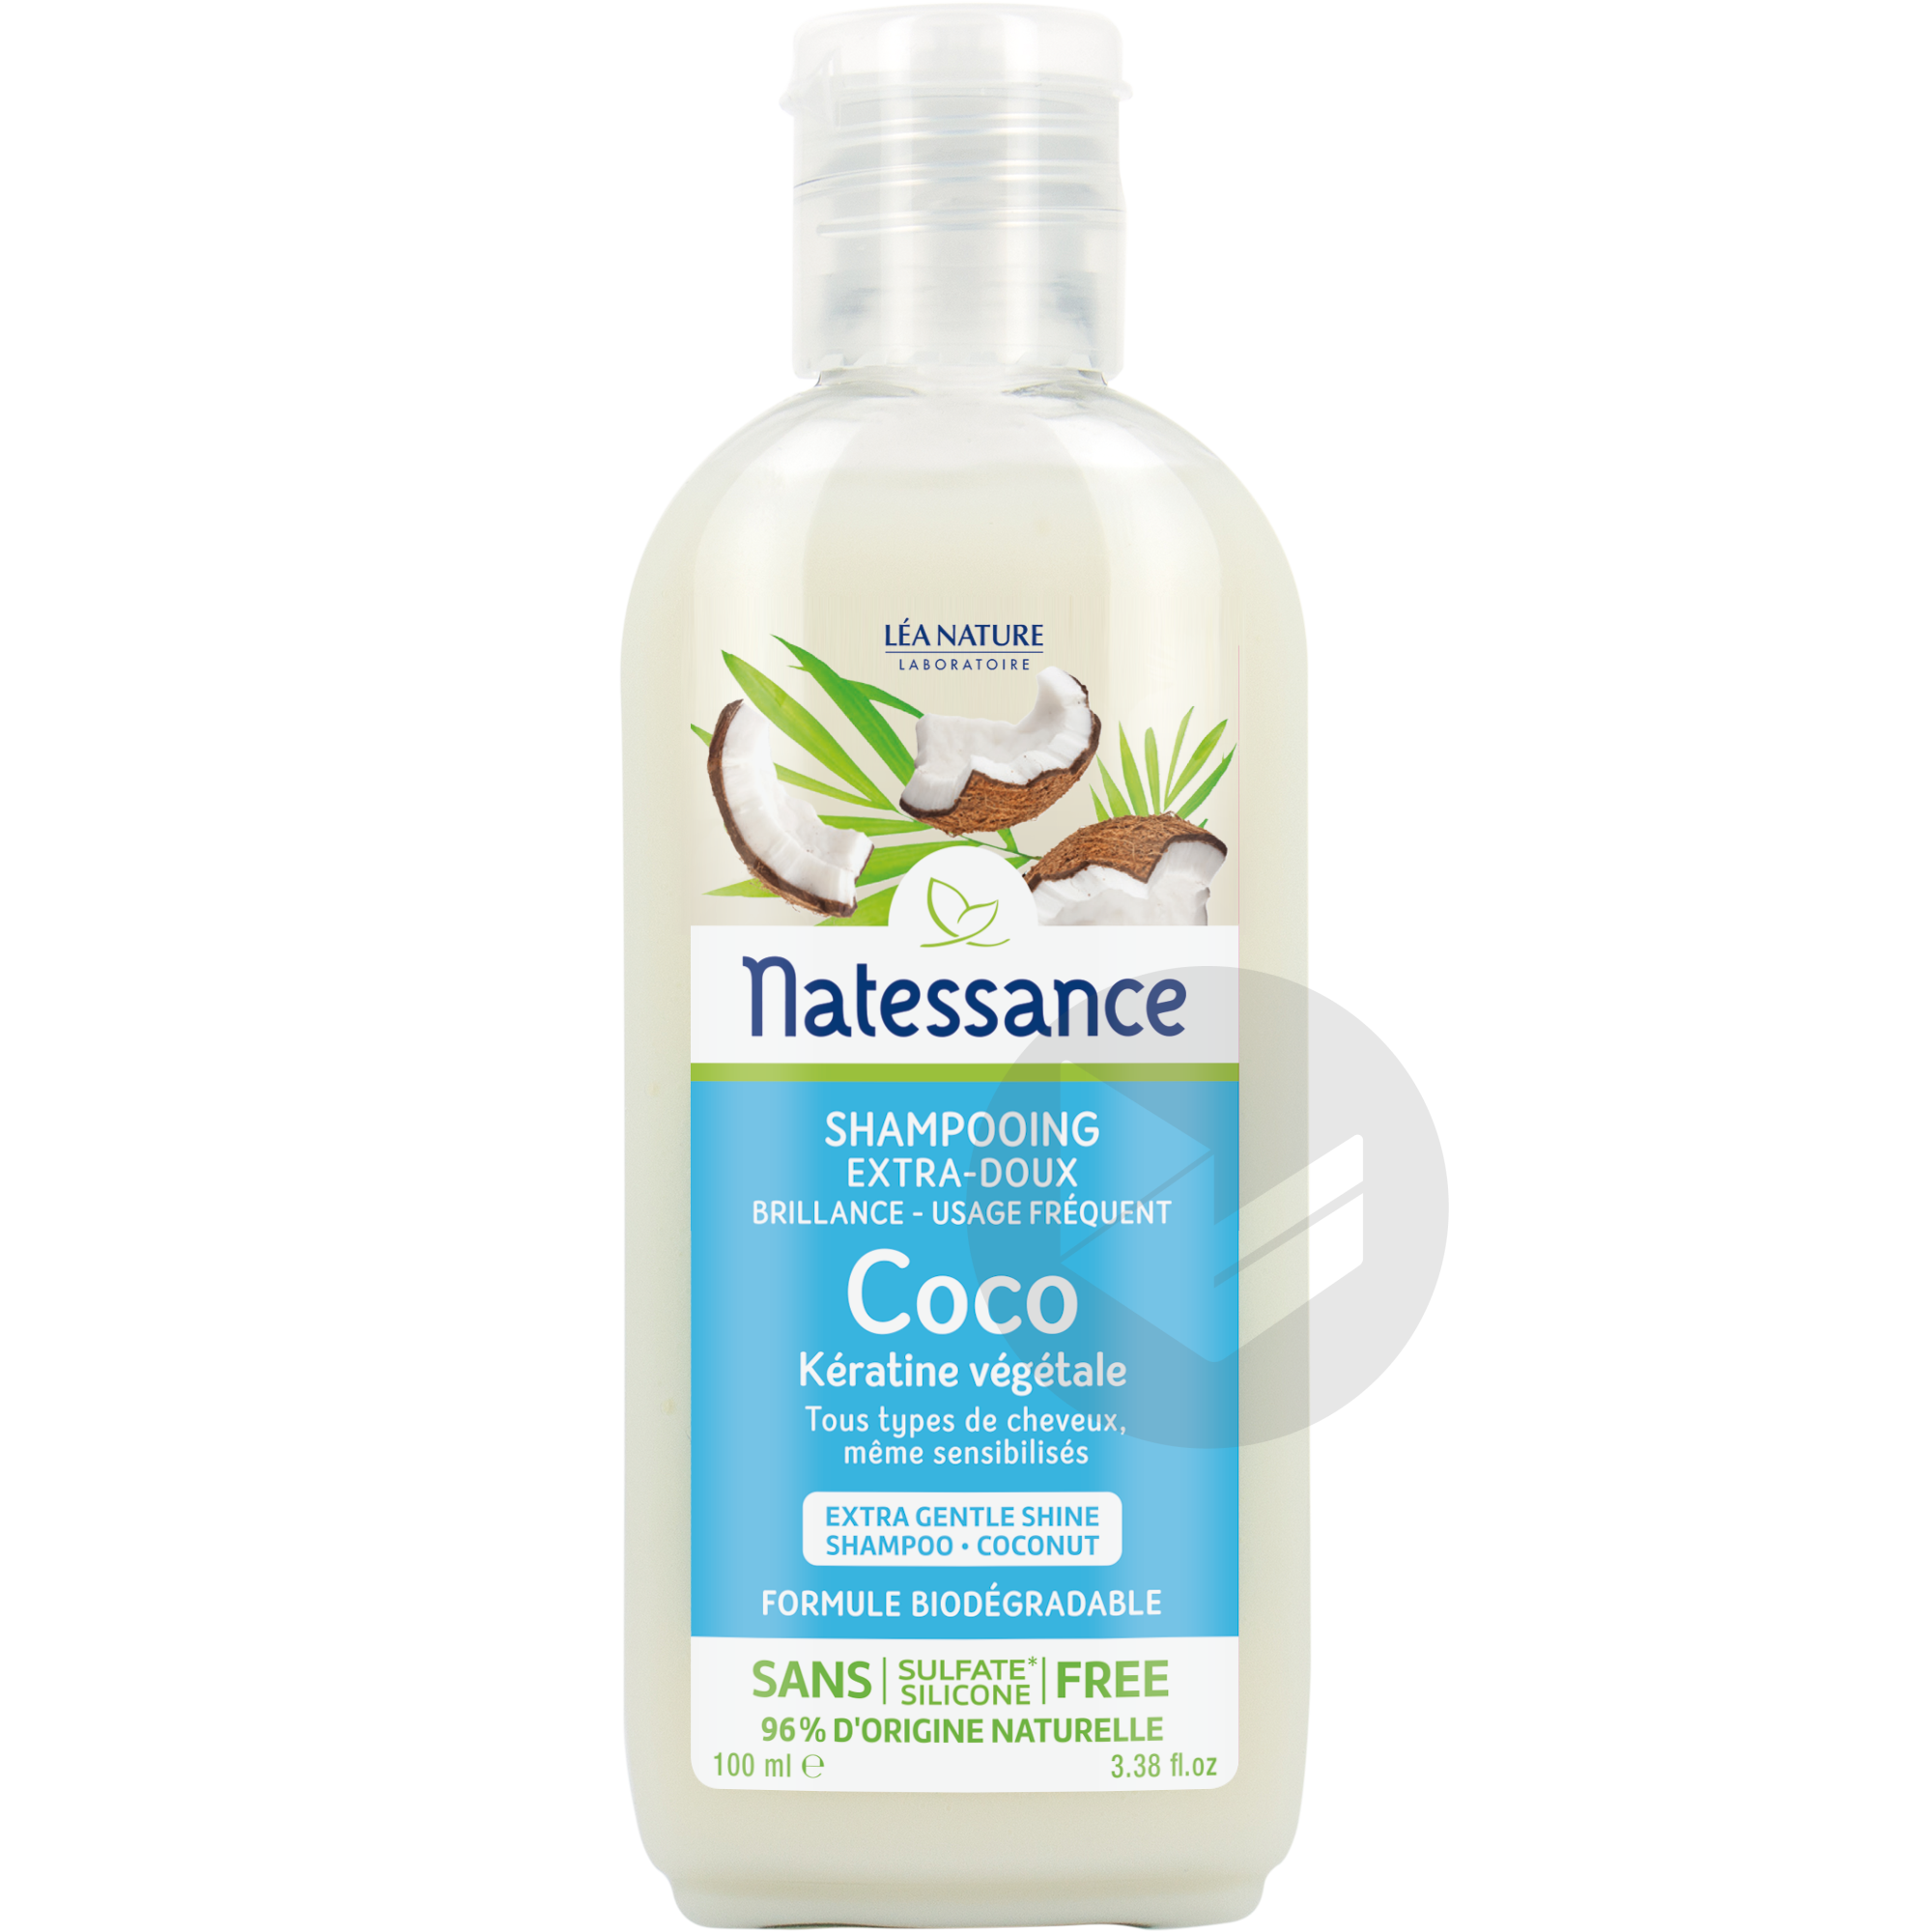 Shampooing Extra Doux Brillance Coco Keratine Vegetale Usage Frequent